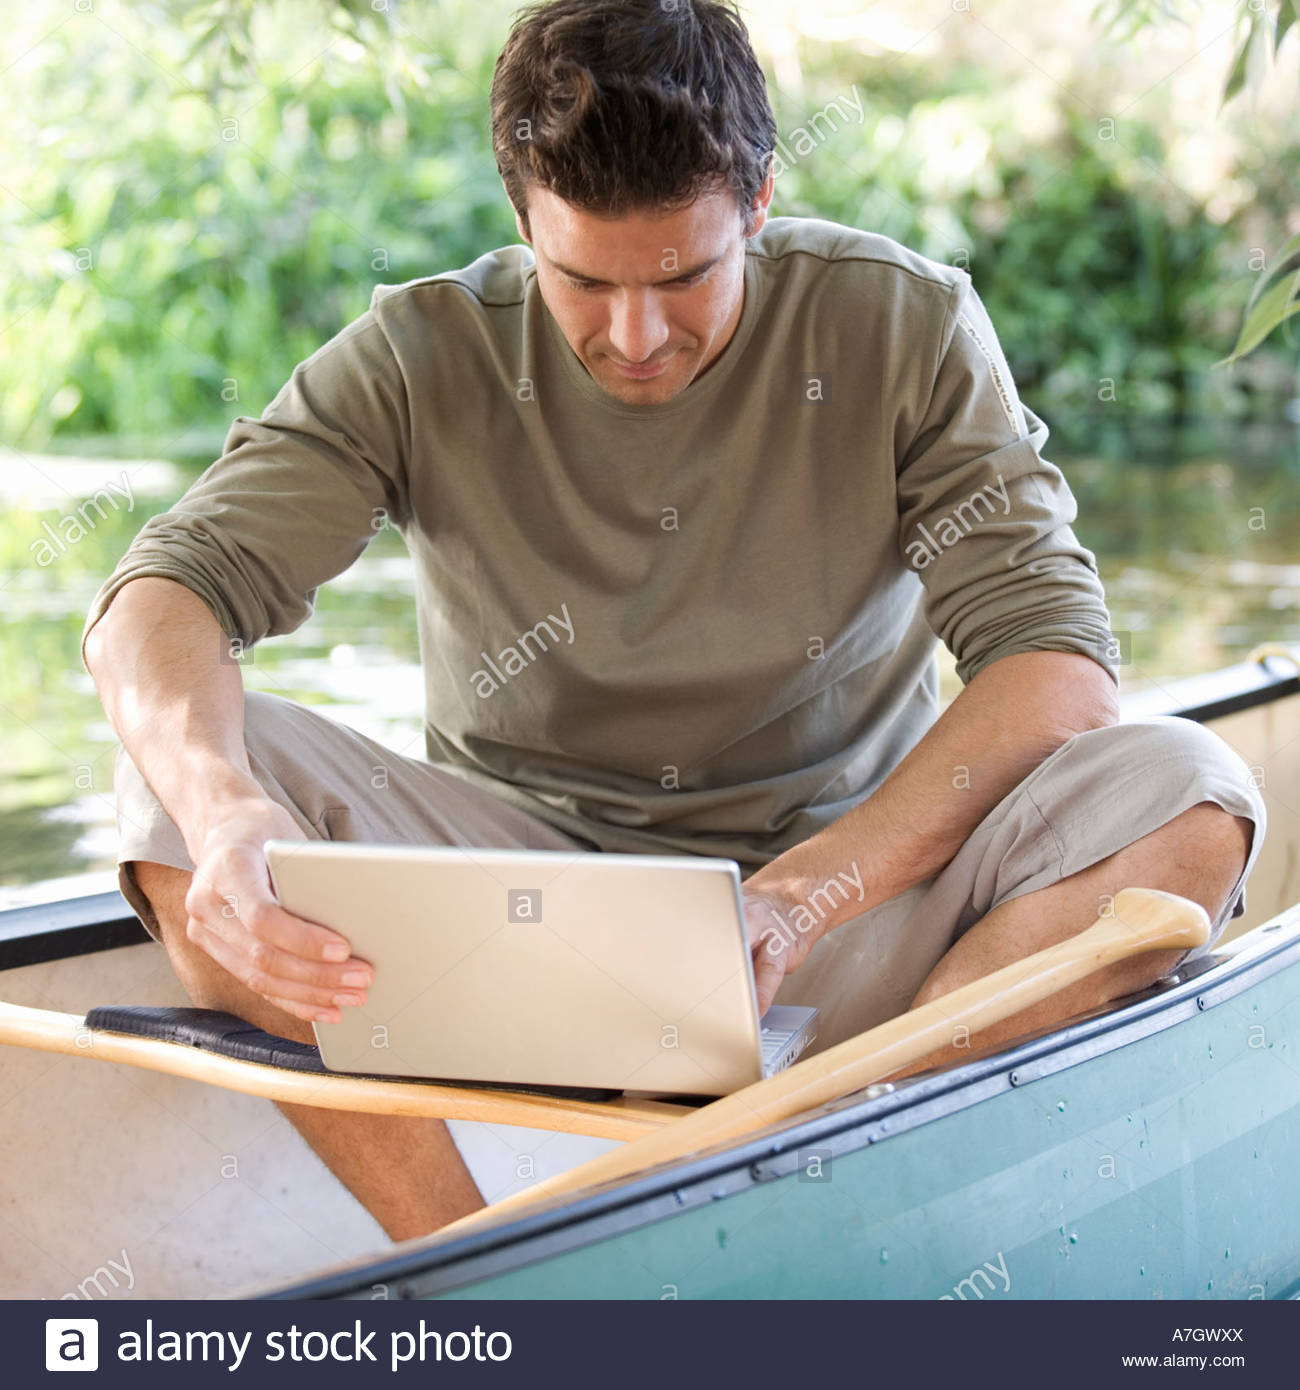 Young man sitting in a boat working on a laptop - Stock Image